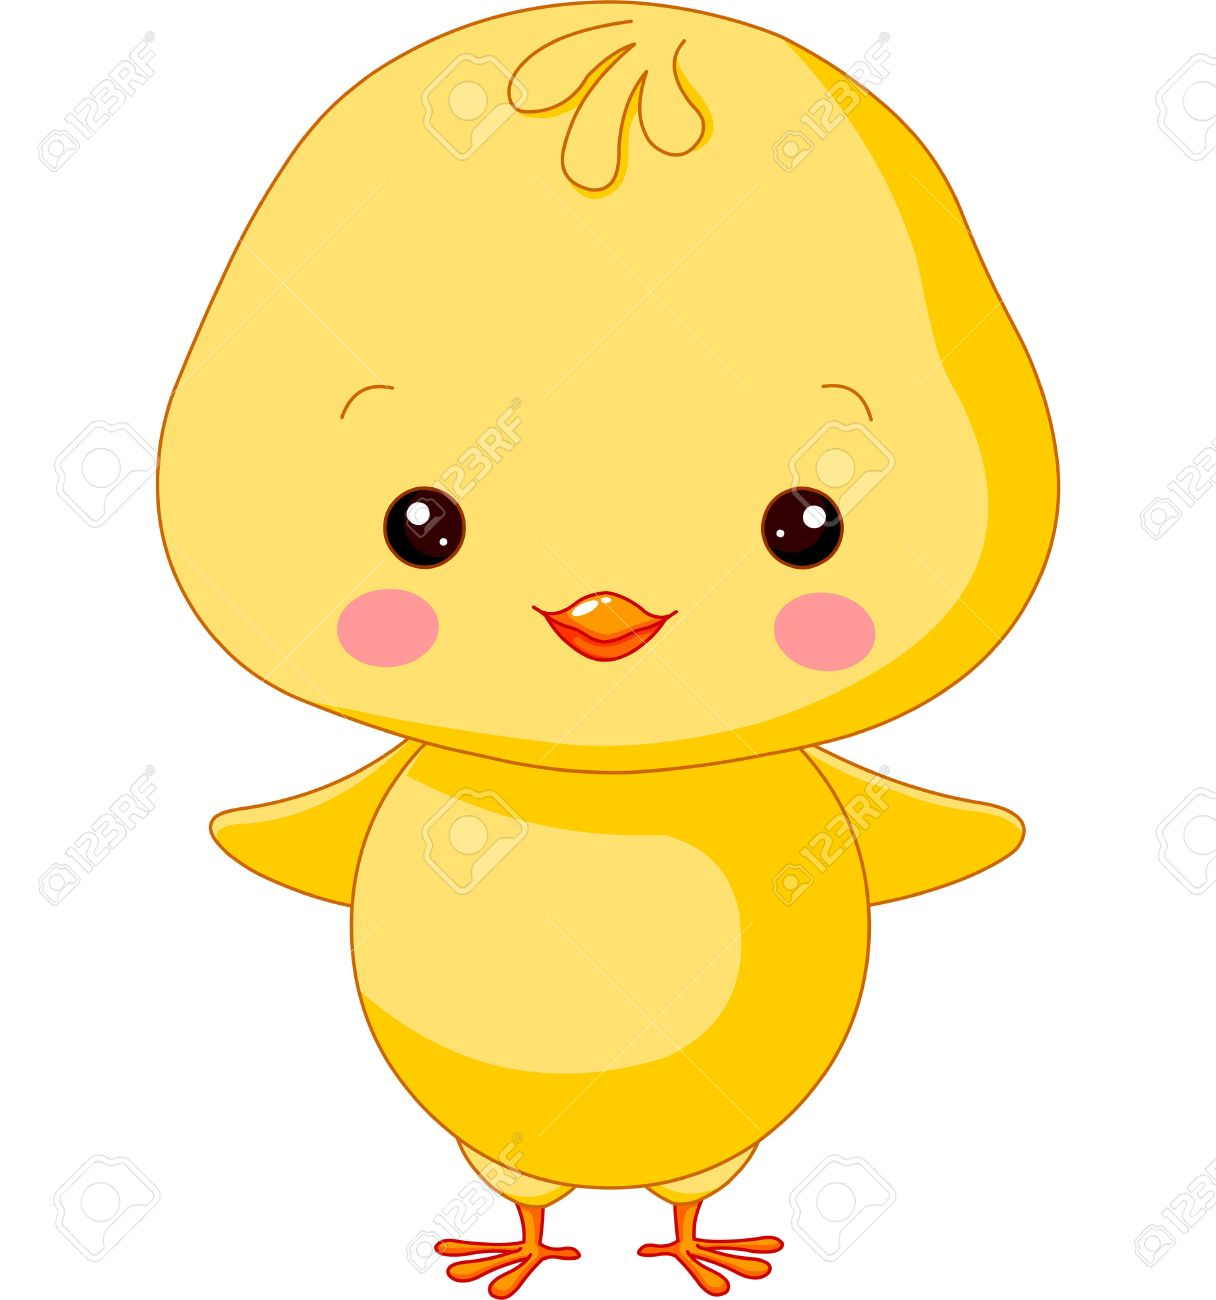 hight resolution of farm animals illustration of cute chick stock vector 27359160